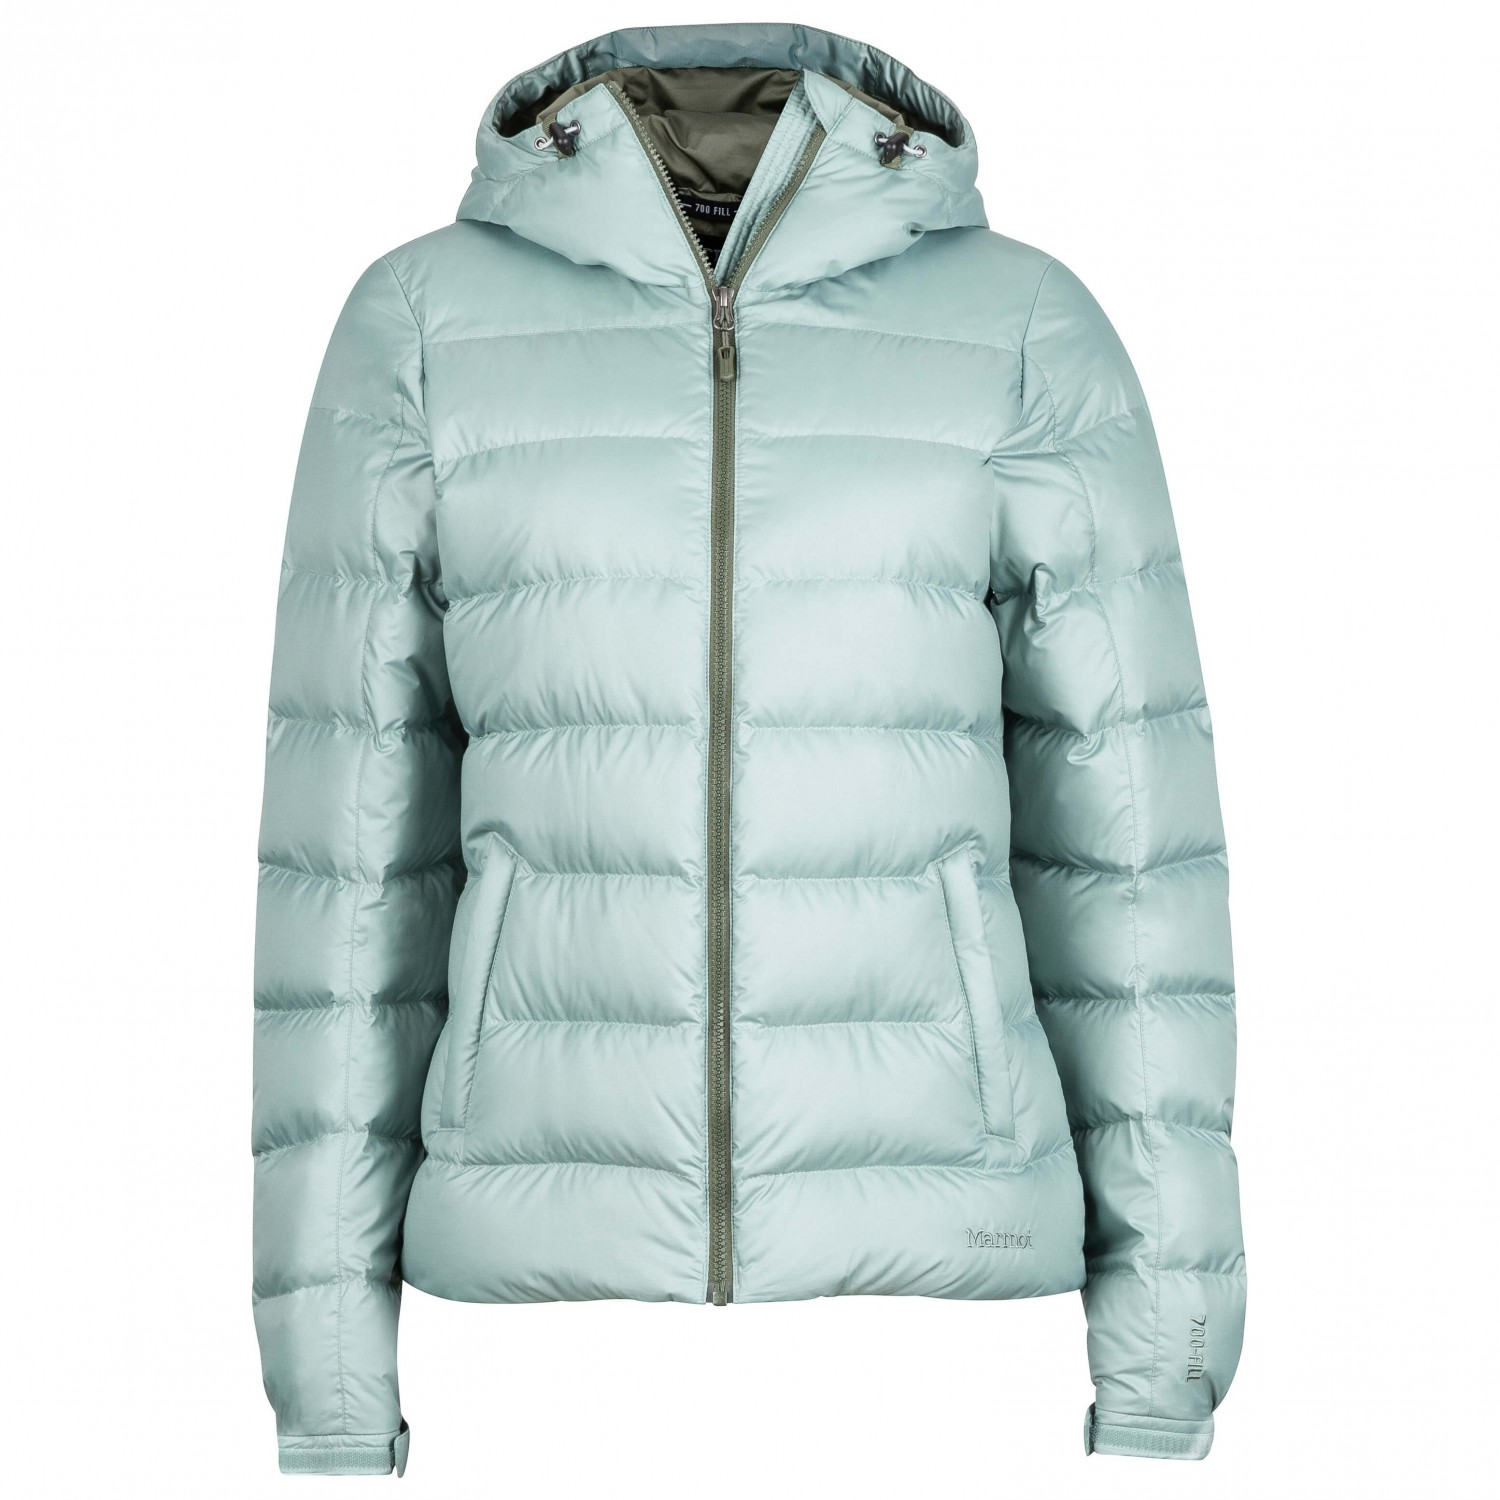 Marmot guides down jacket (for women)